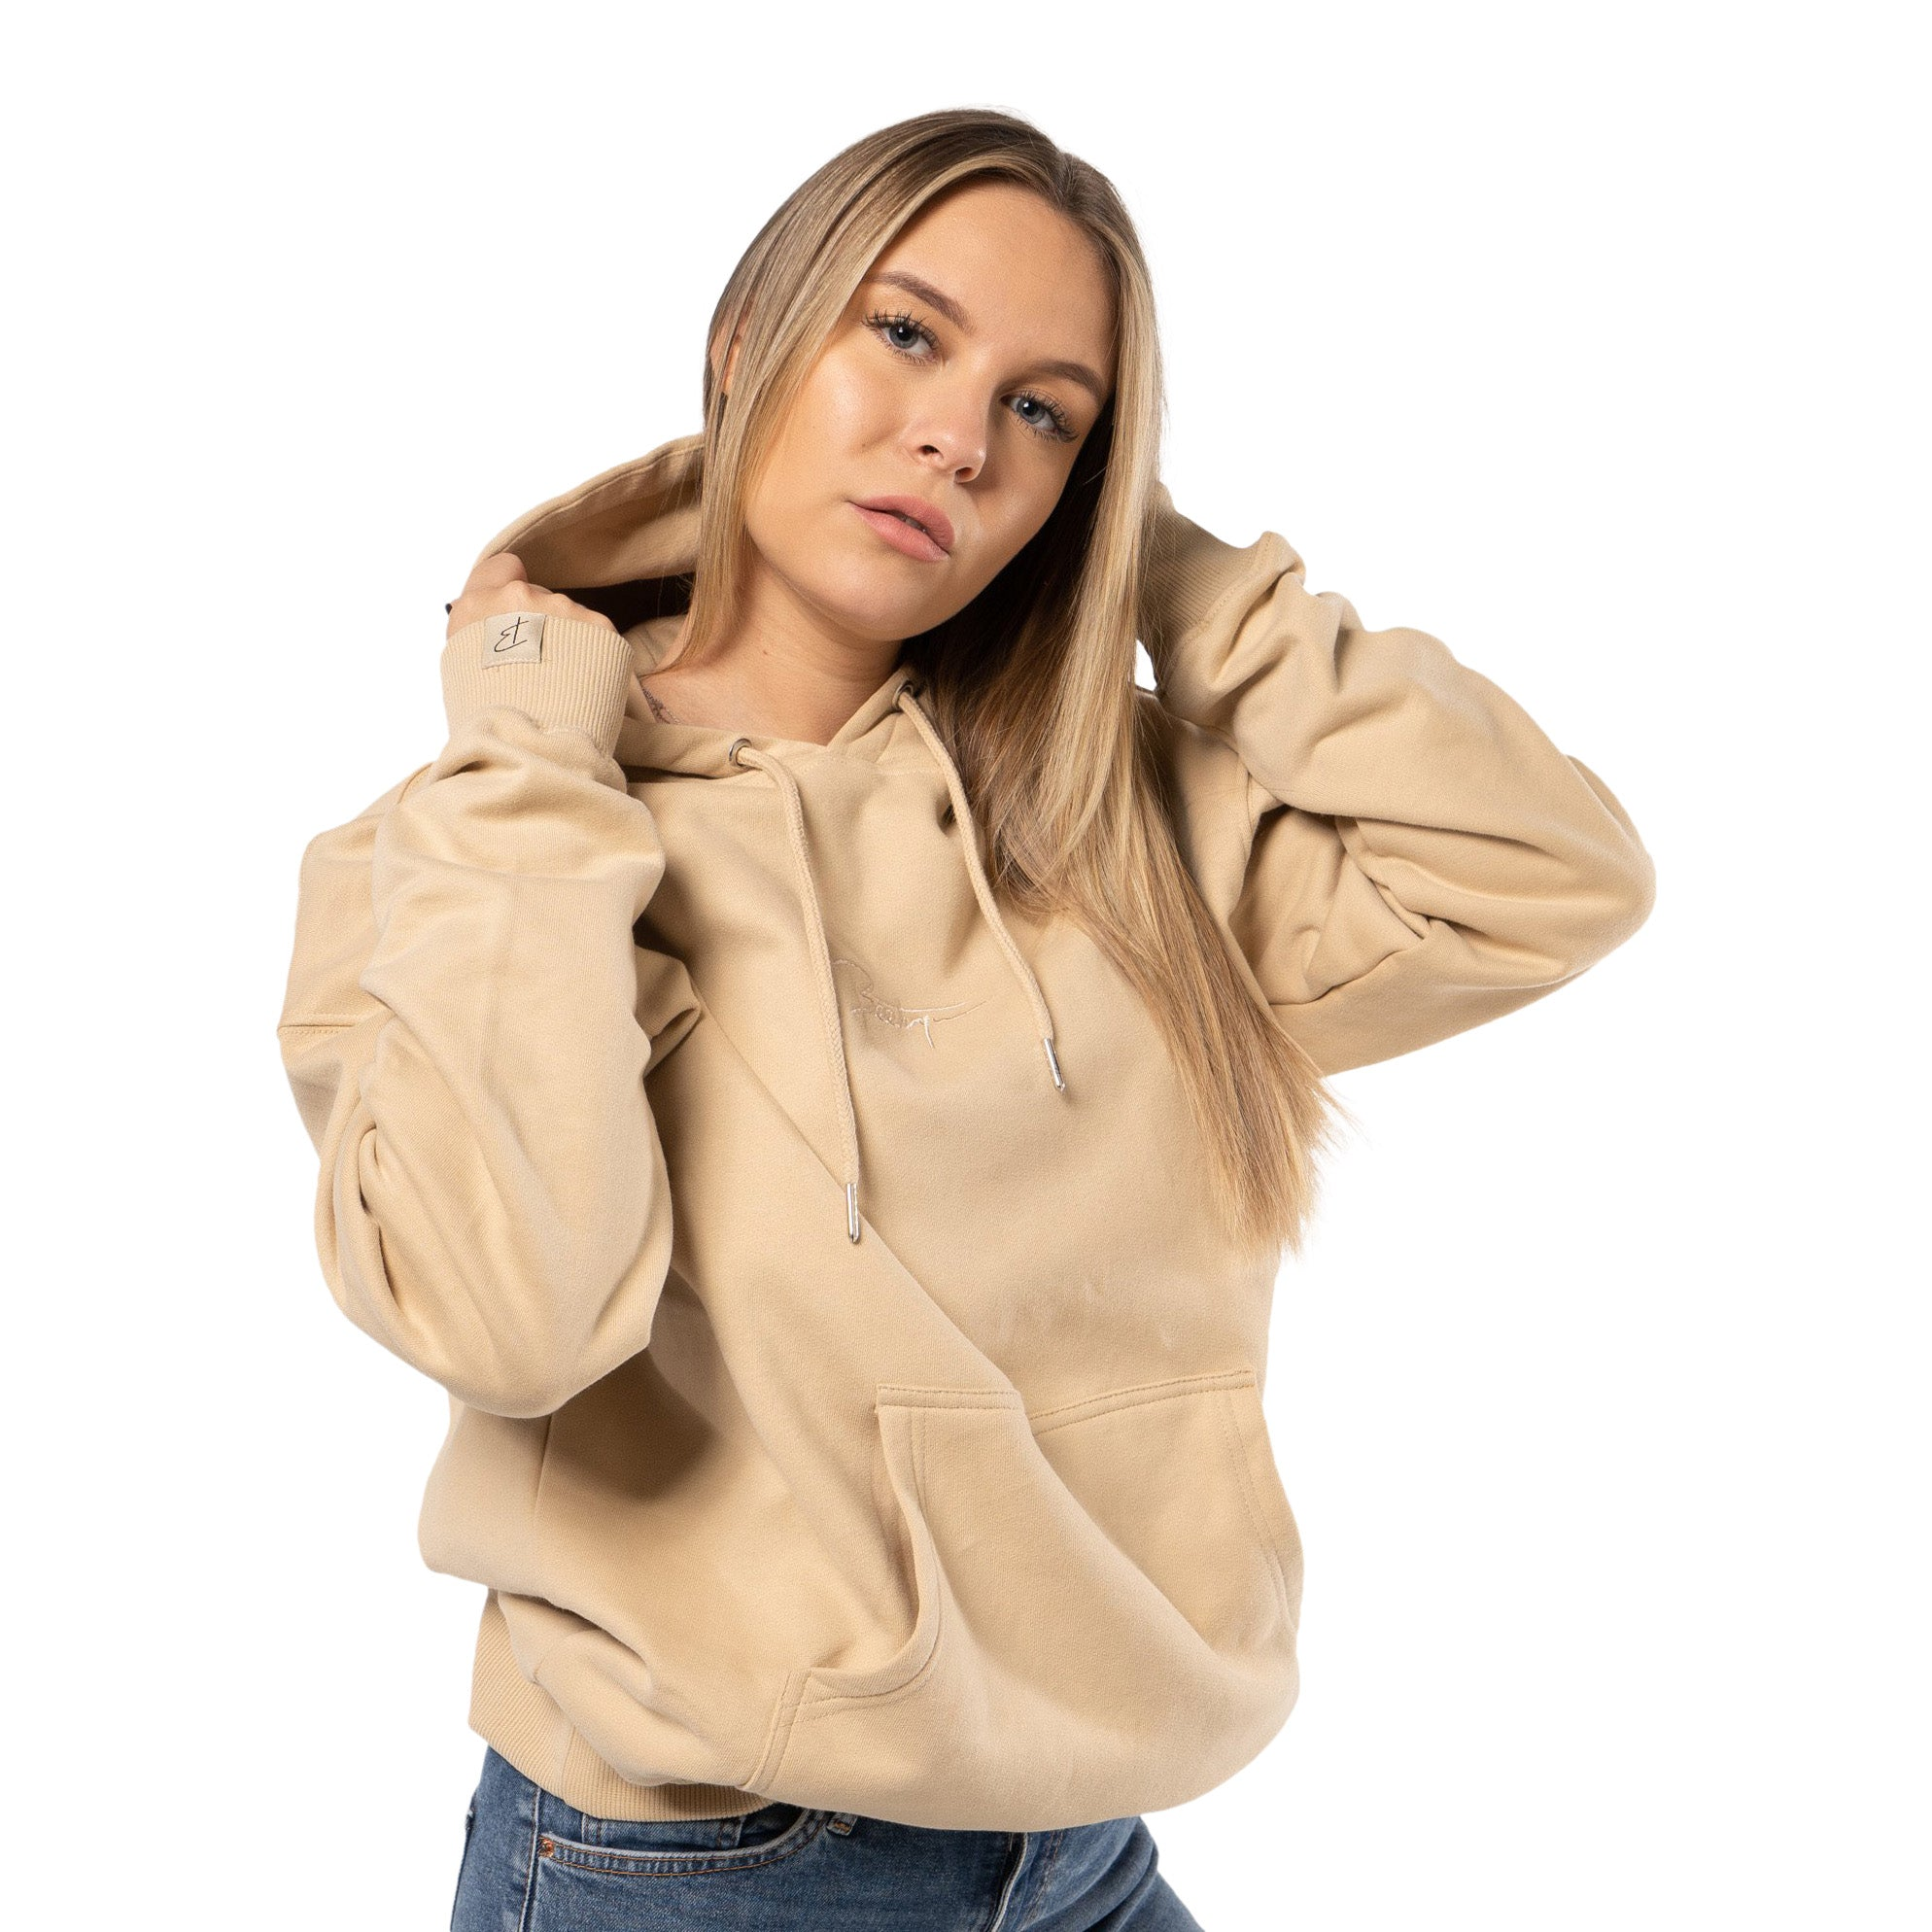 Beetique Basic Hoodie Beige I 100% Baumwolle I Kosmetik- und Make Up Brand